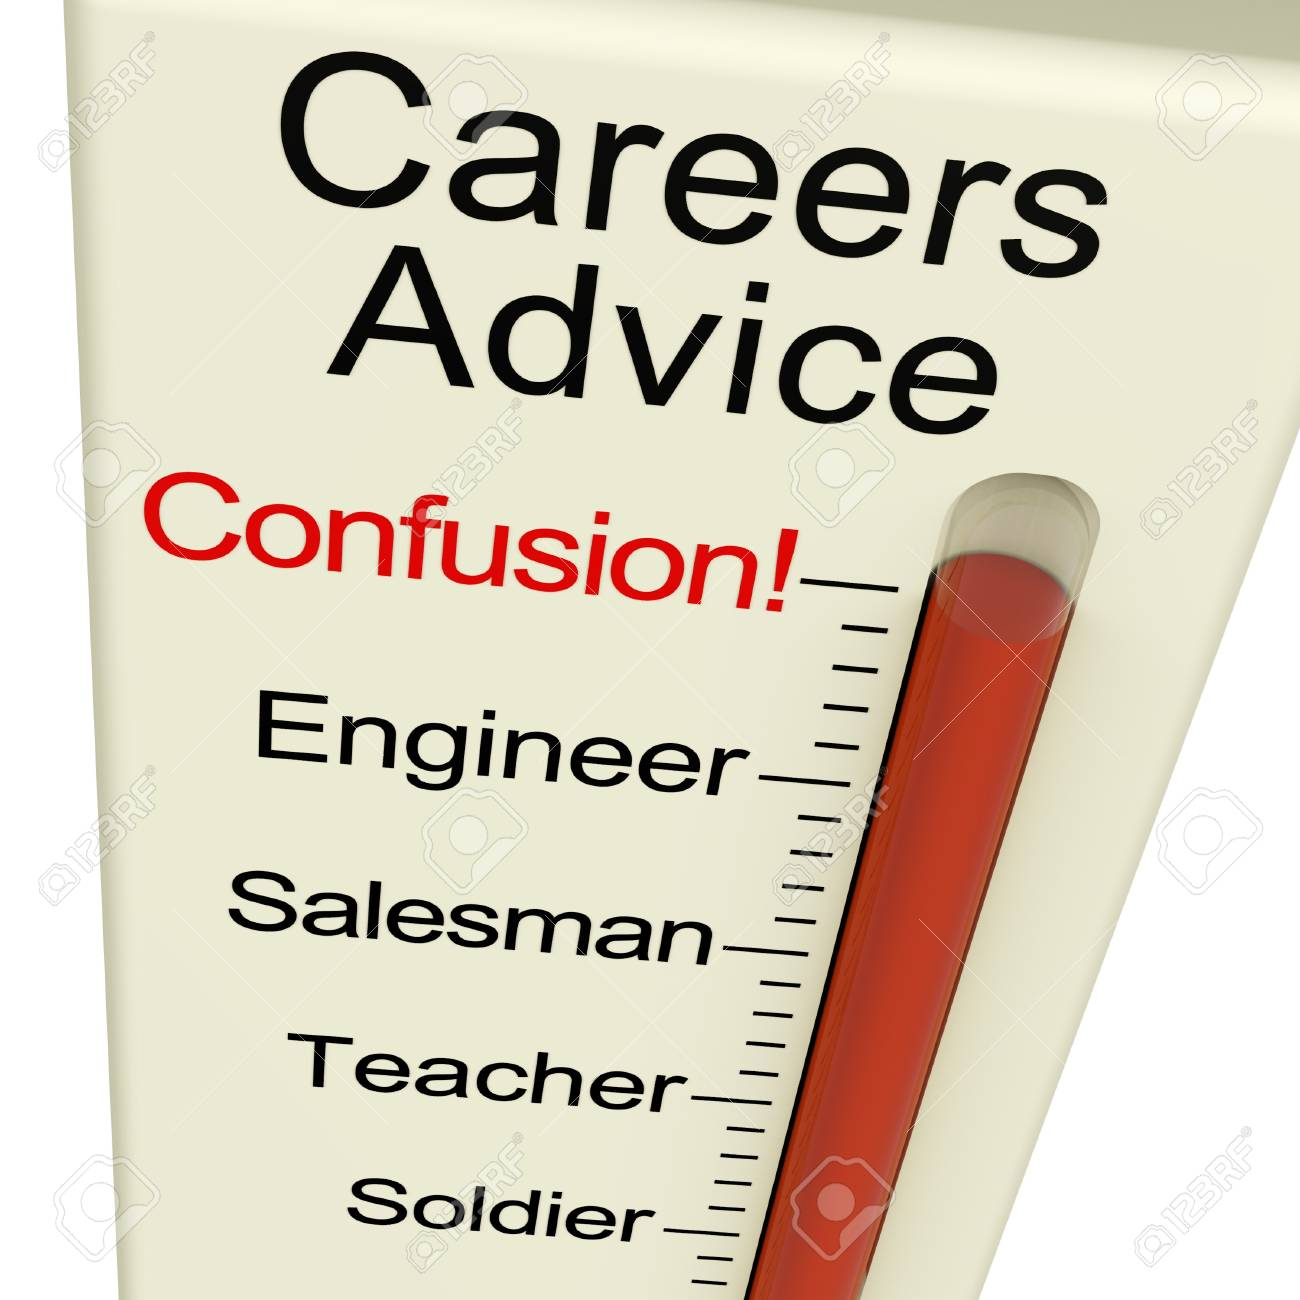 Careers Advice Meter Confusion Shows Employment Guidance And Decisions Stock Photo - 11948066